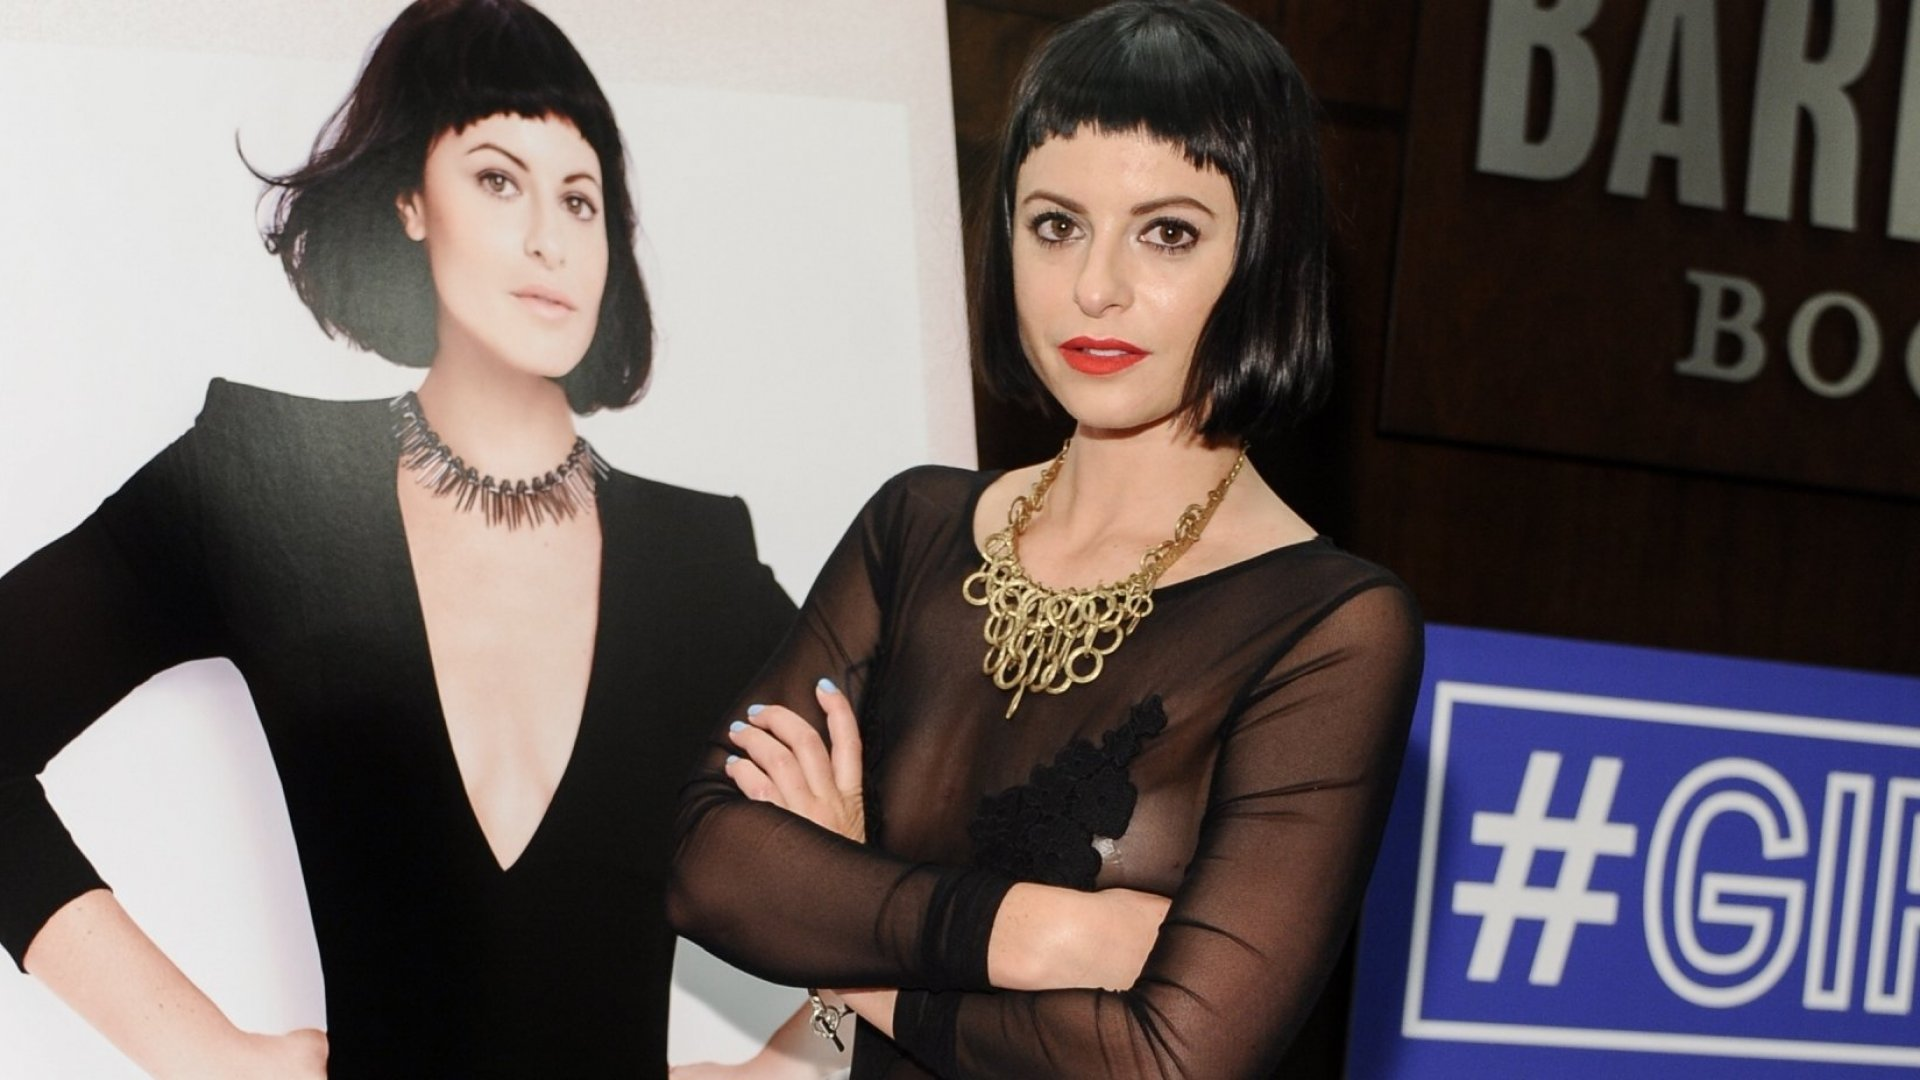 This Is Where Nasty Gal's Founder Wants to Go Next